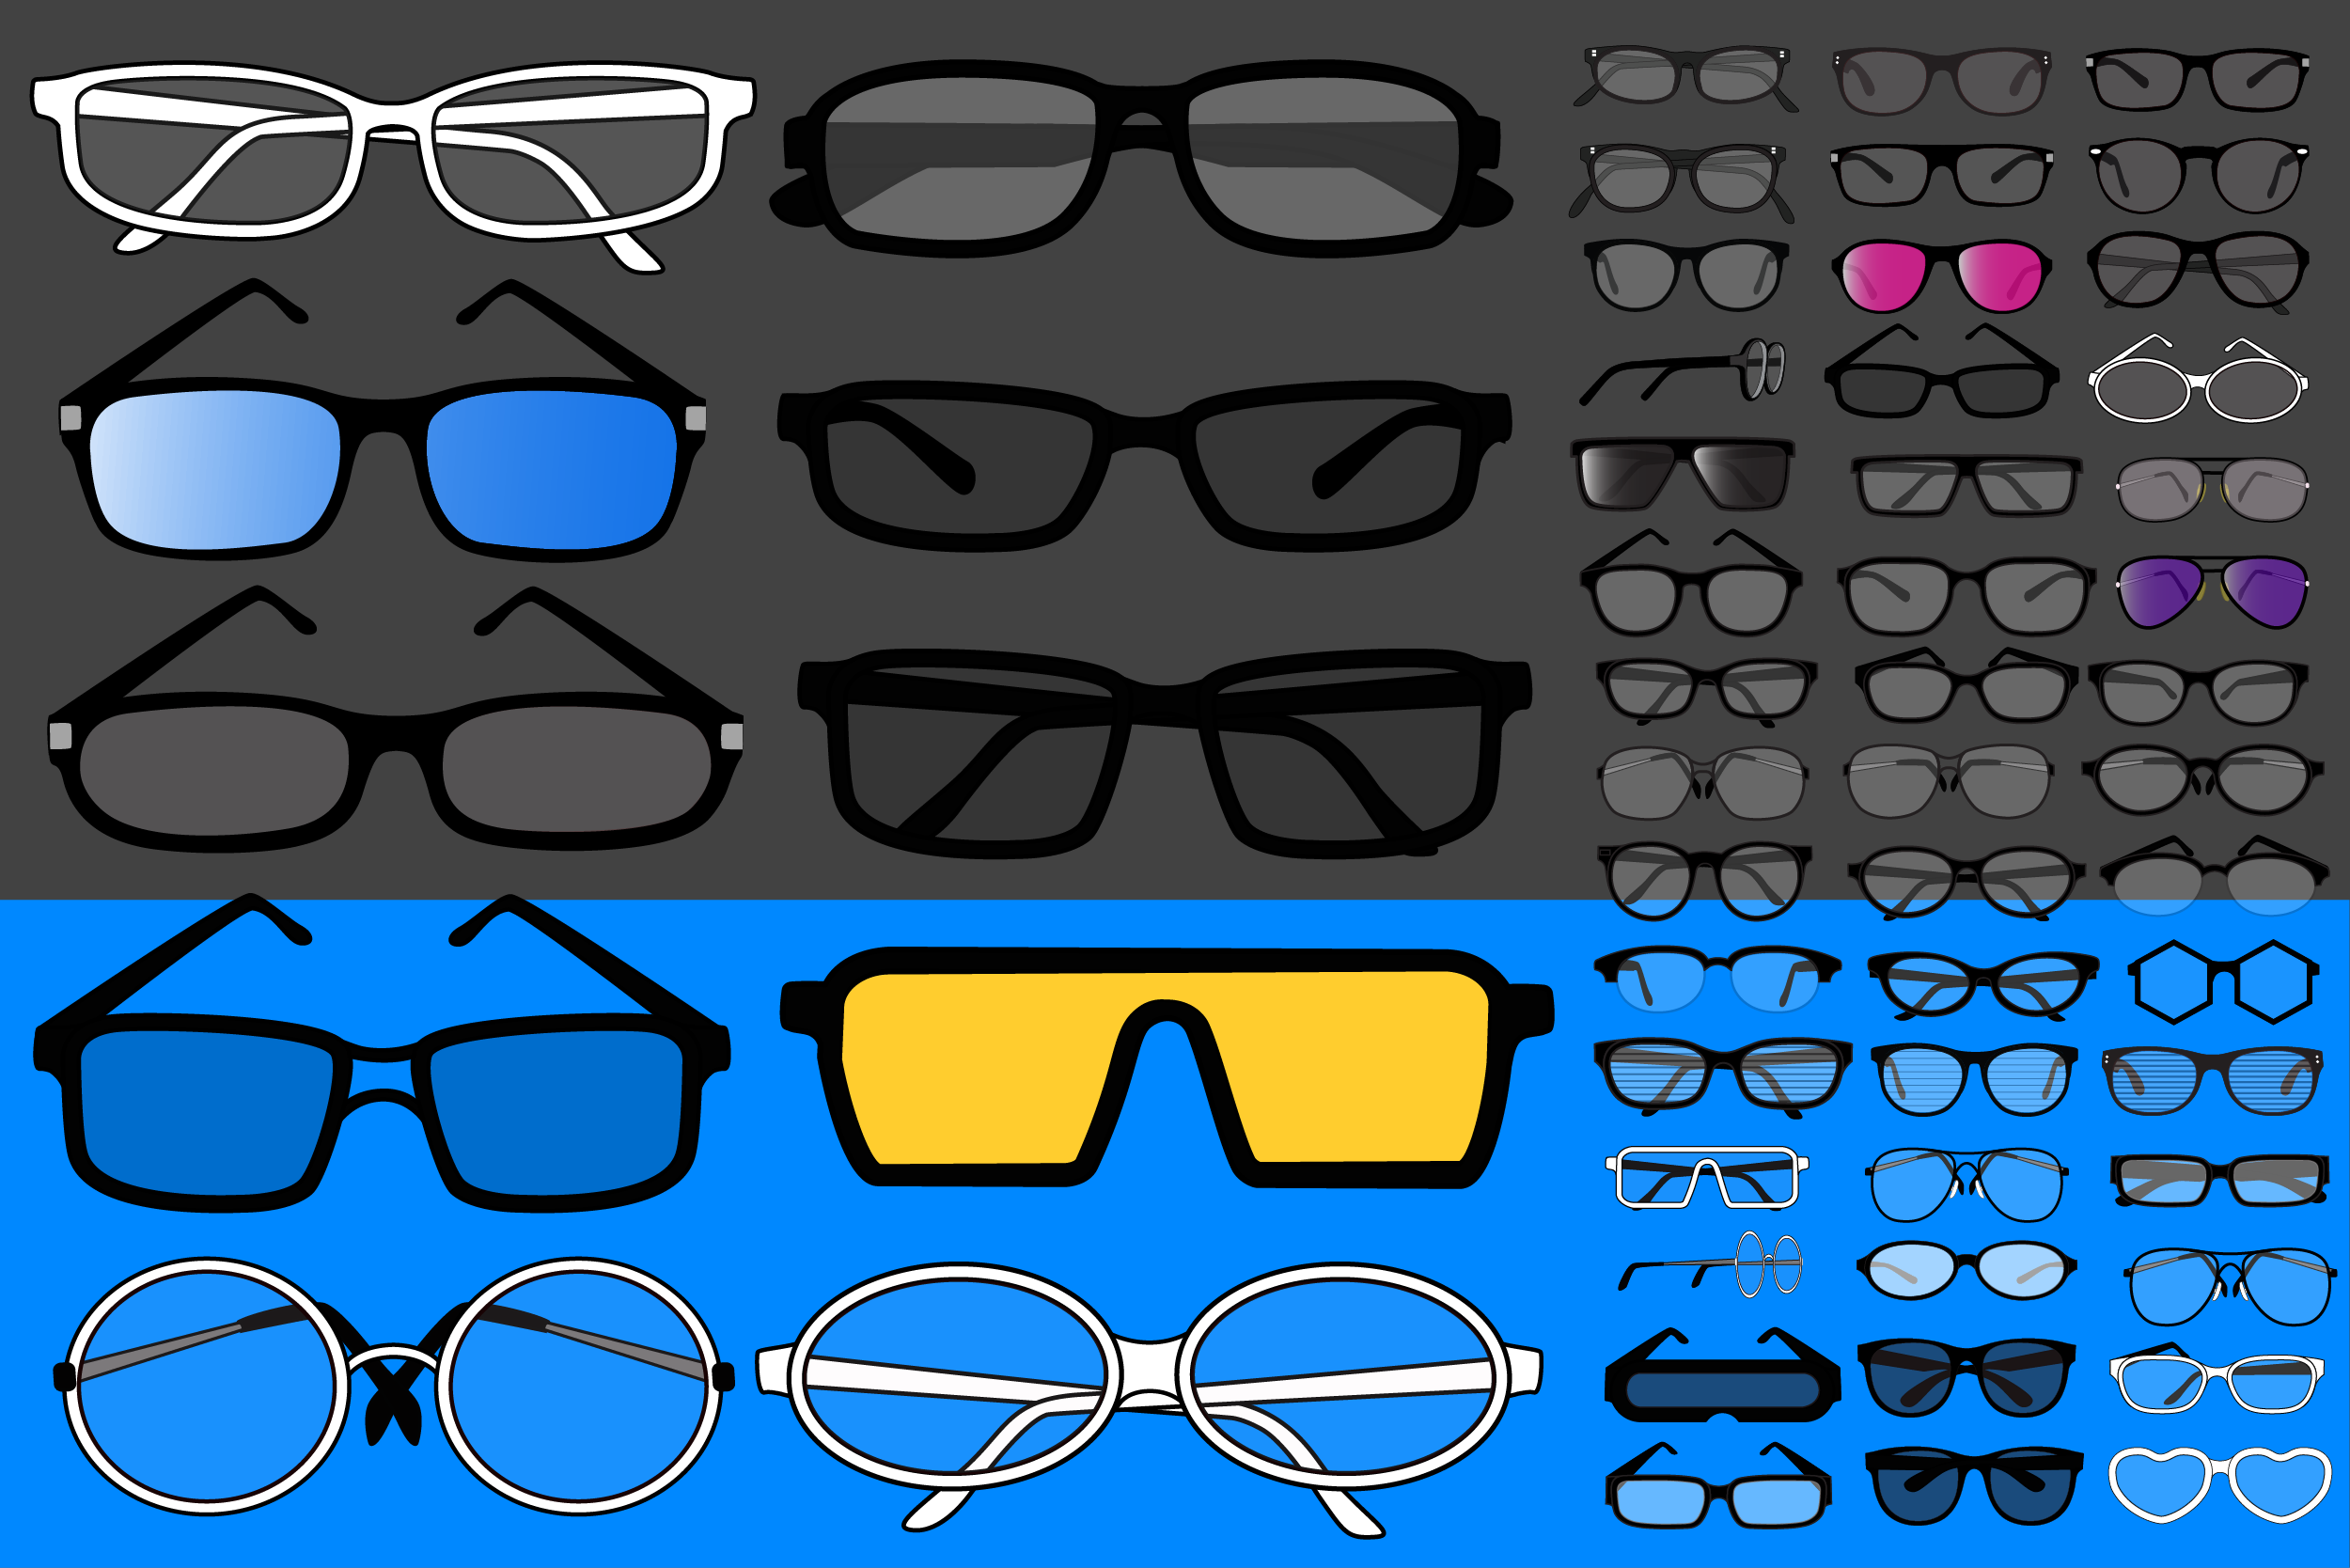 Glasses and eyewear vector and PNG collection